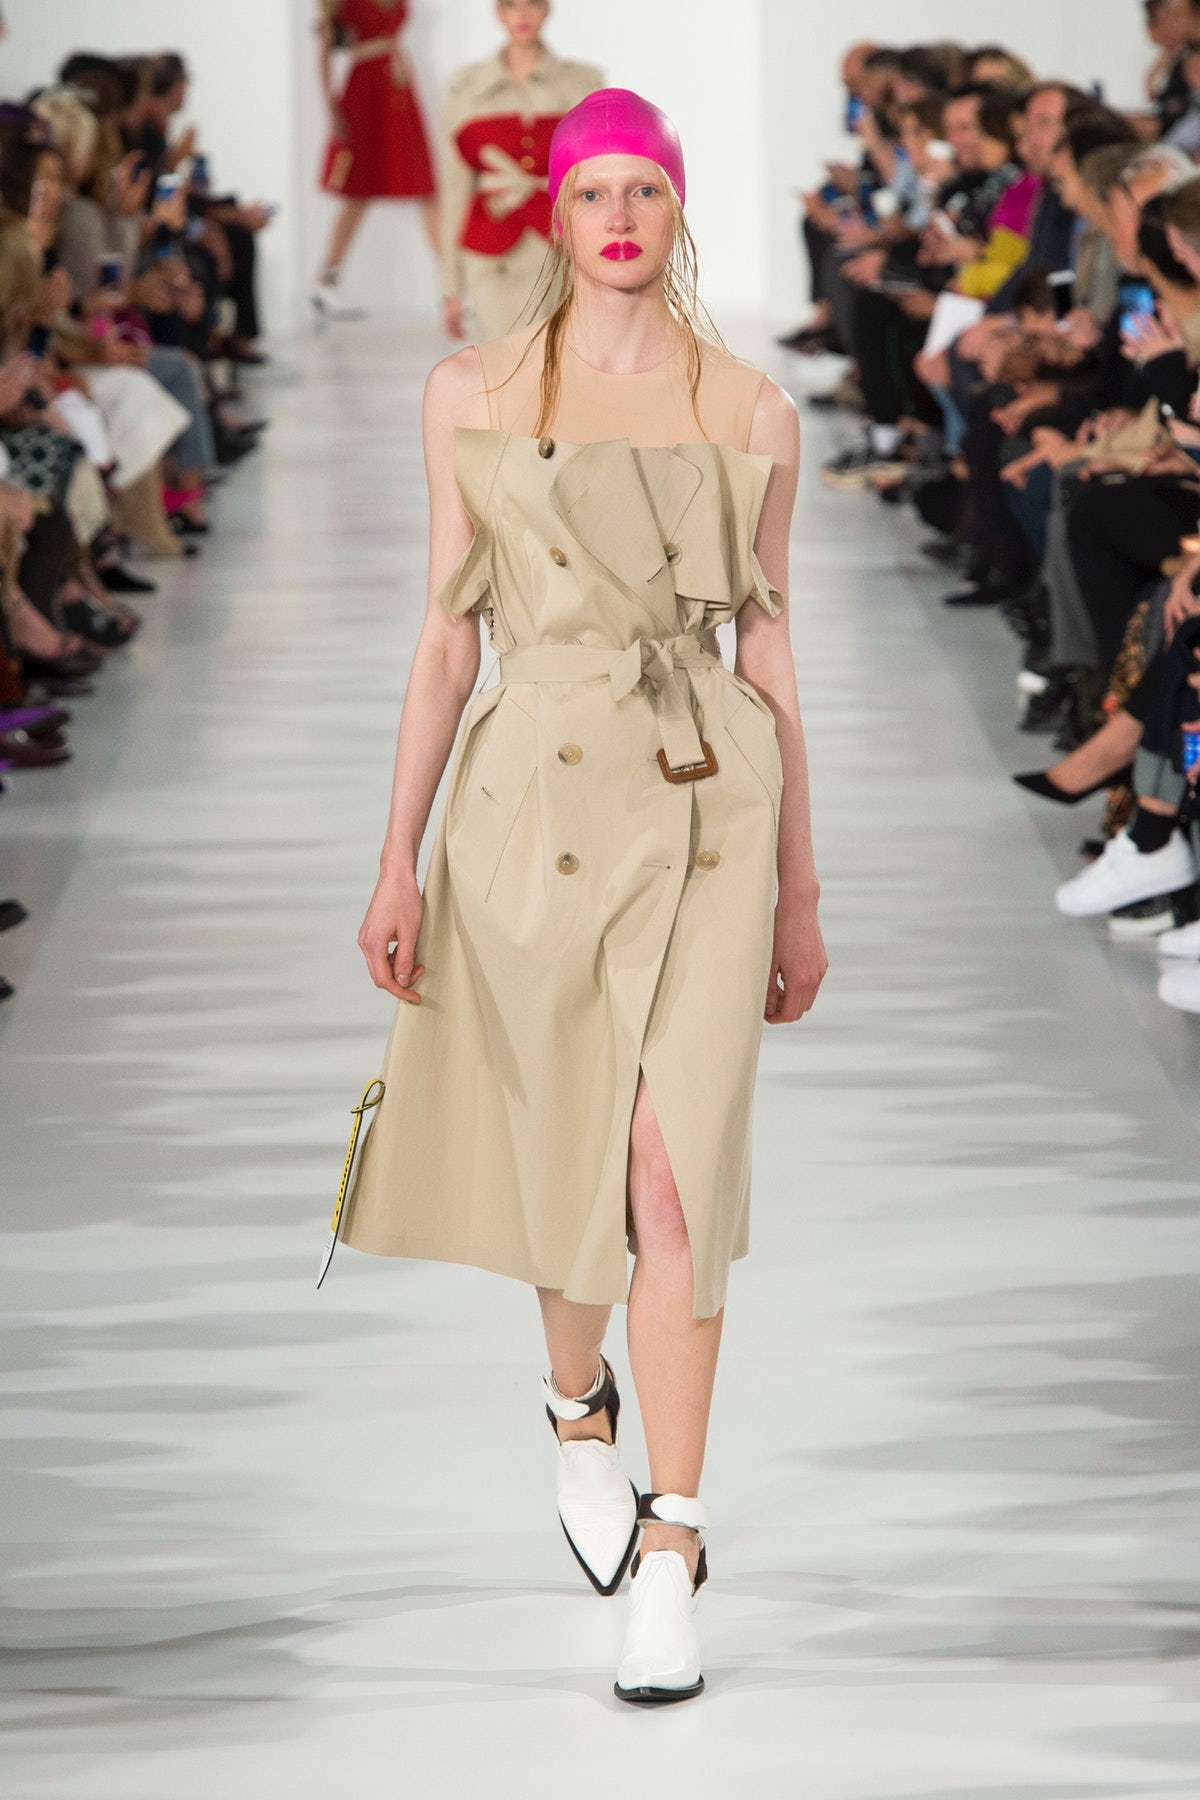 Appropriation of the Inappropriate at Maison Margiela